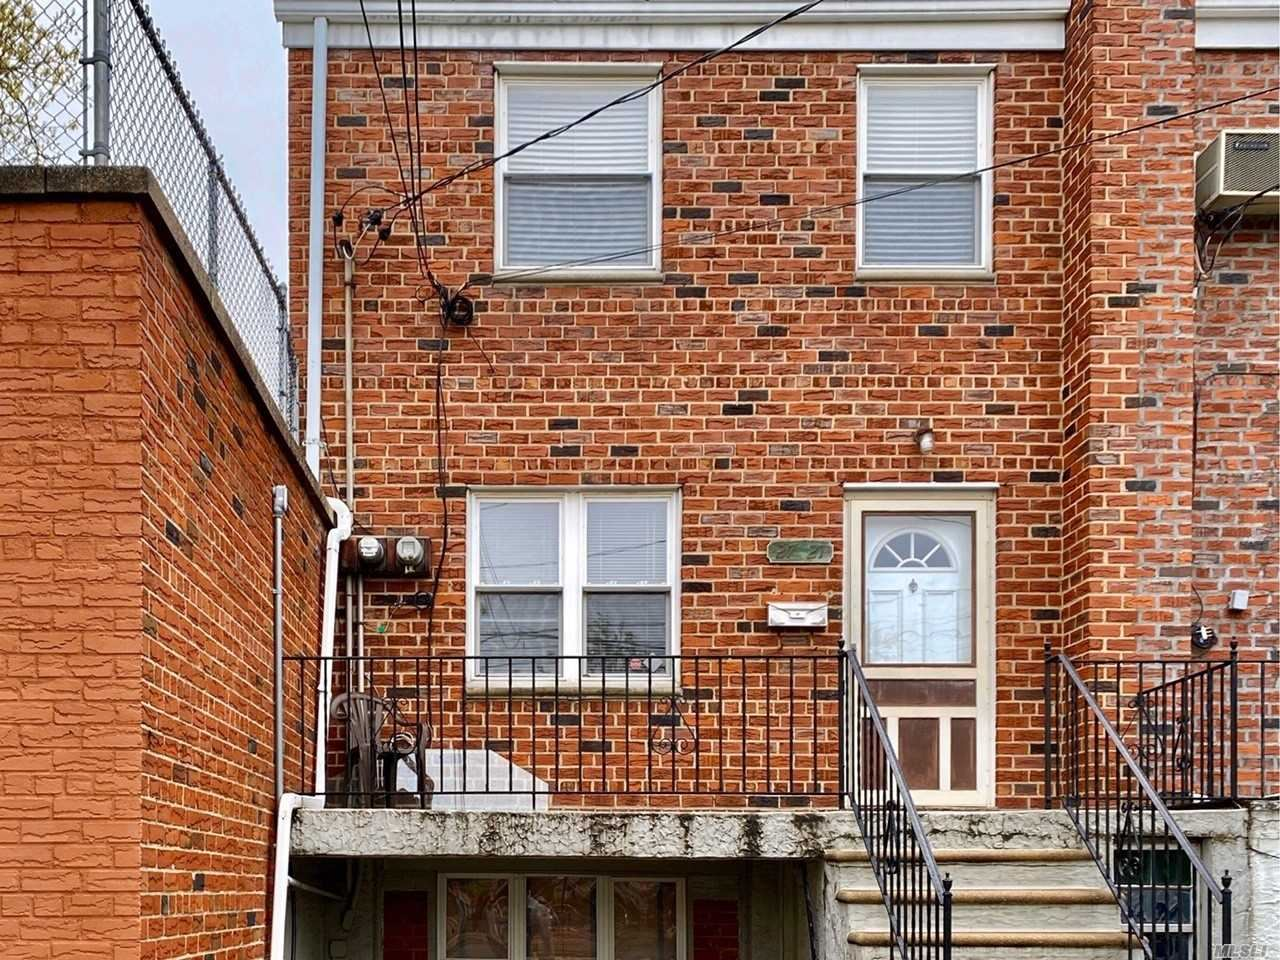 27-21 170th Street #1, Flushing, NY 11358 - MLS#: 3213277